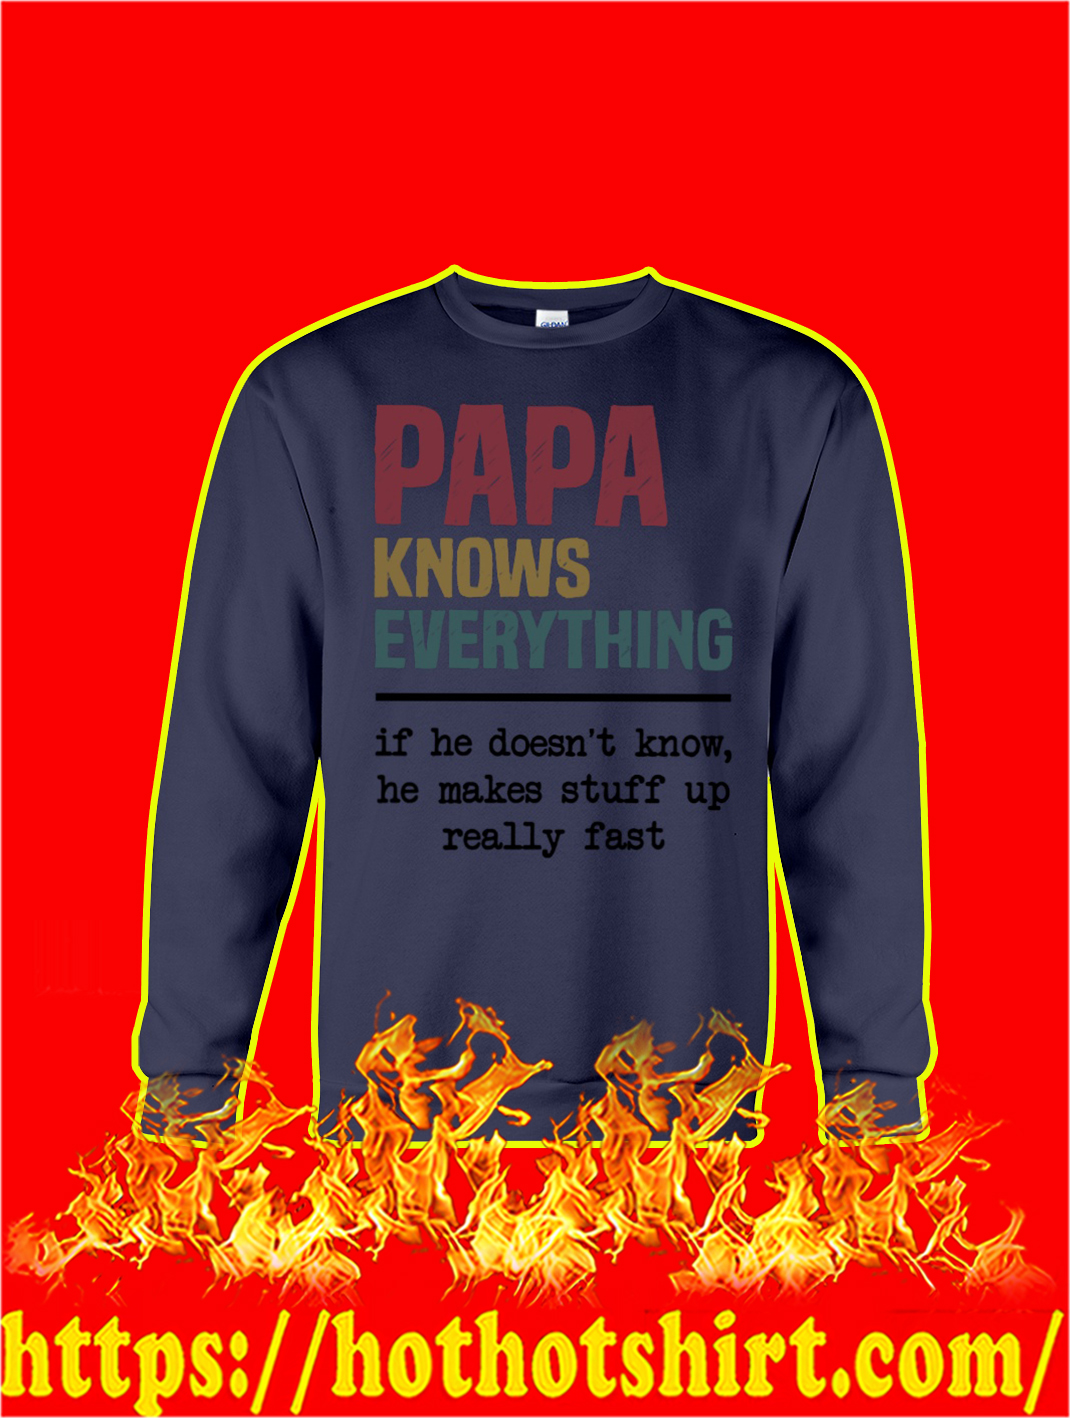 Papa Knows Everything If He Doesn't Know He Makes Stuff Up Really Fast sweatshirt